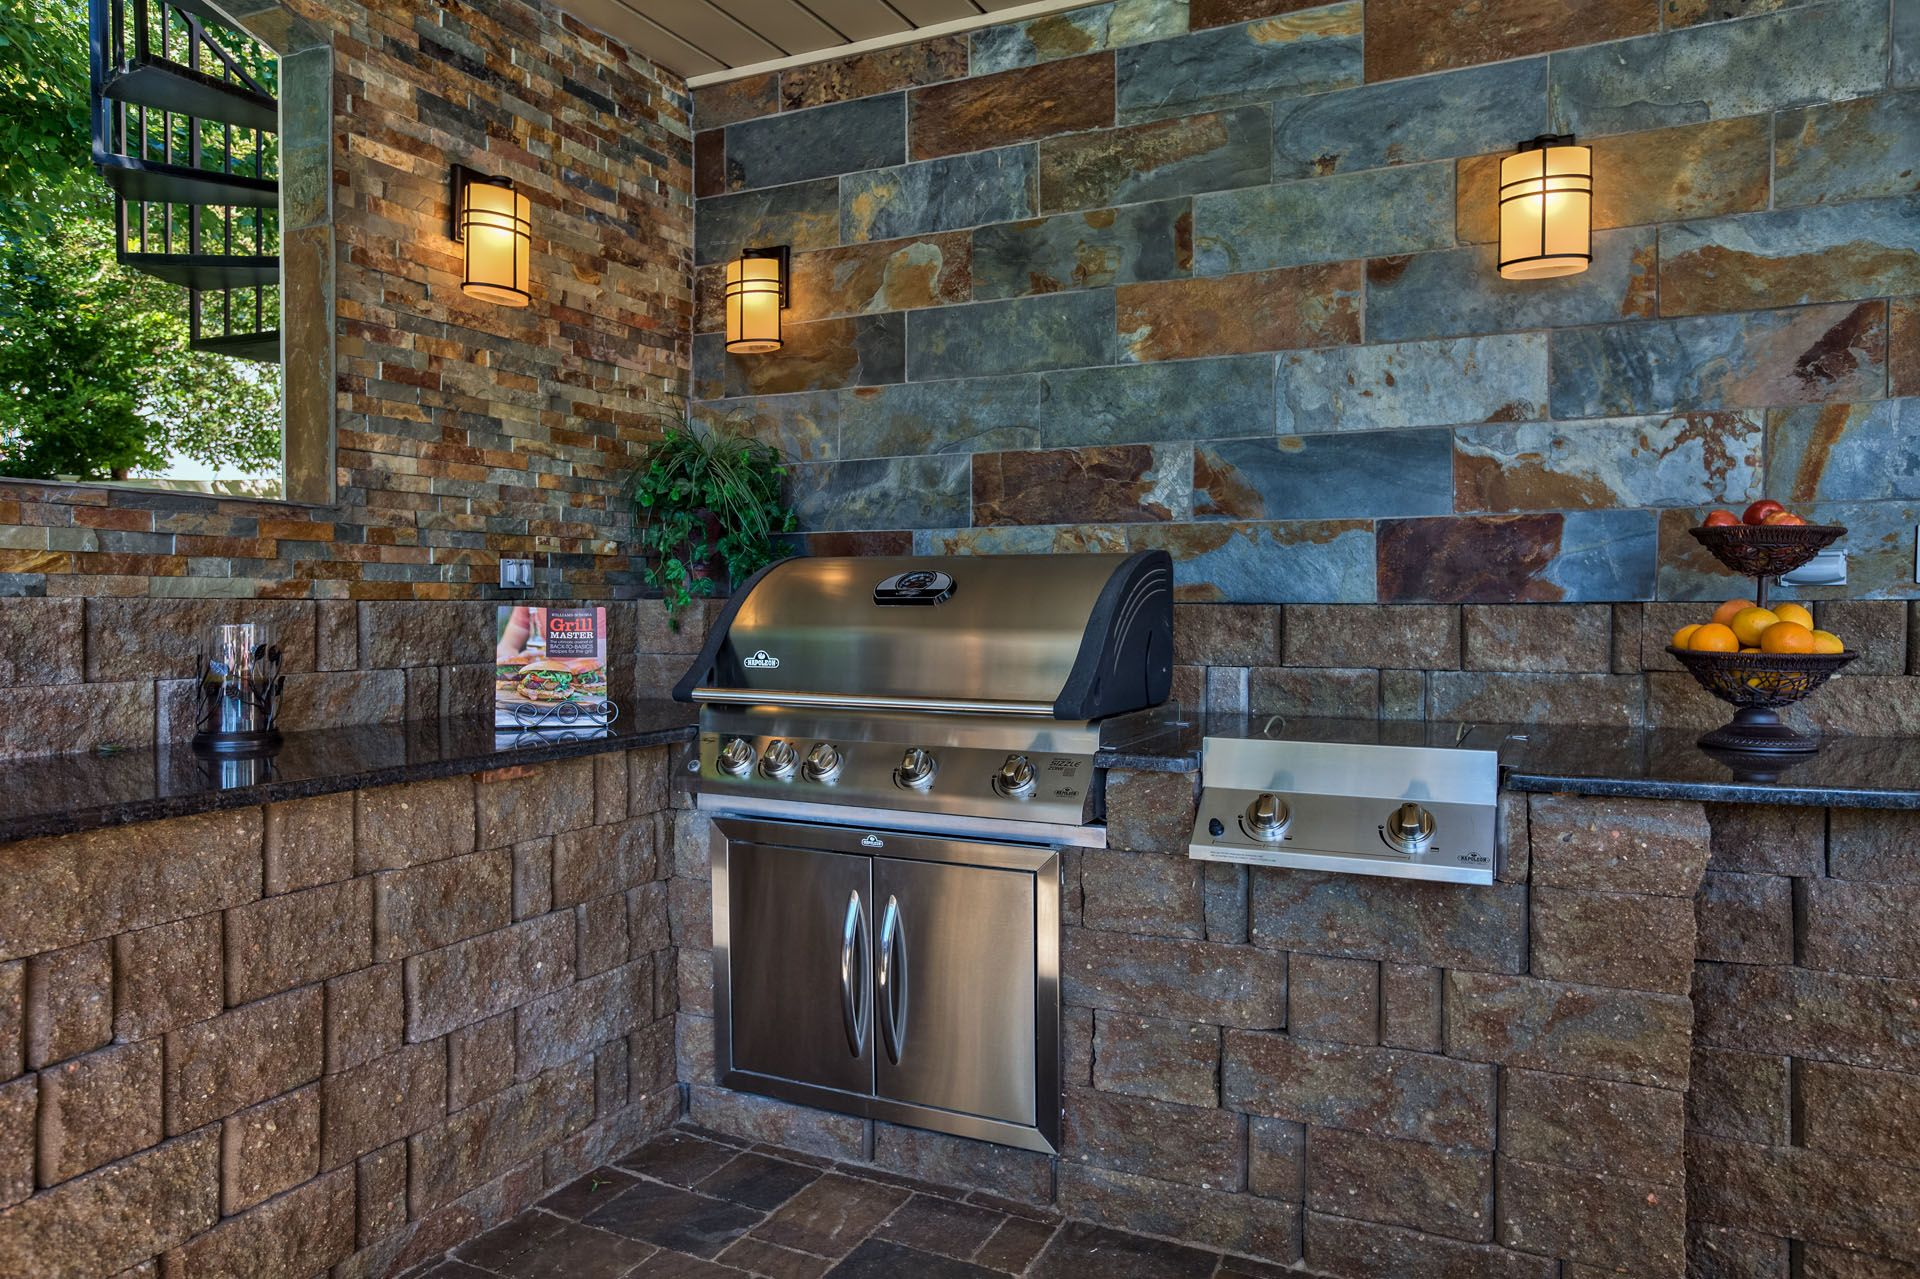 This Outdoor Kitchen Has Beautiful Tile Work With A Gorgeous Bar Area And Grill This Kitchen Is Perfect F Outdoor Kitchen Kitchen Projects Picky Eater Recipes